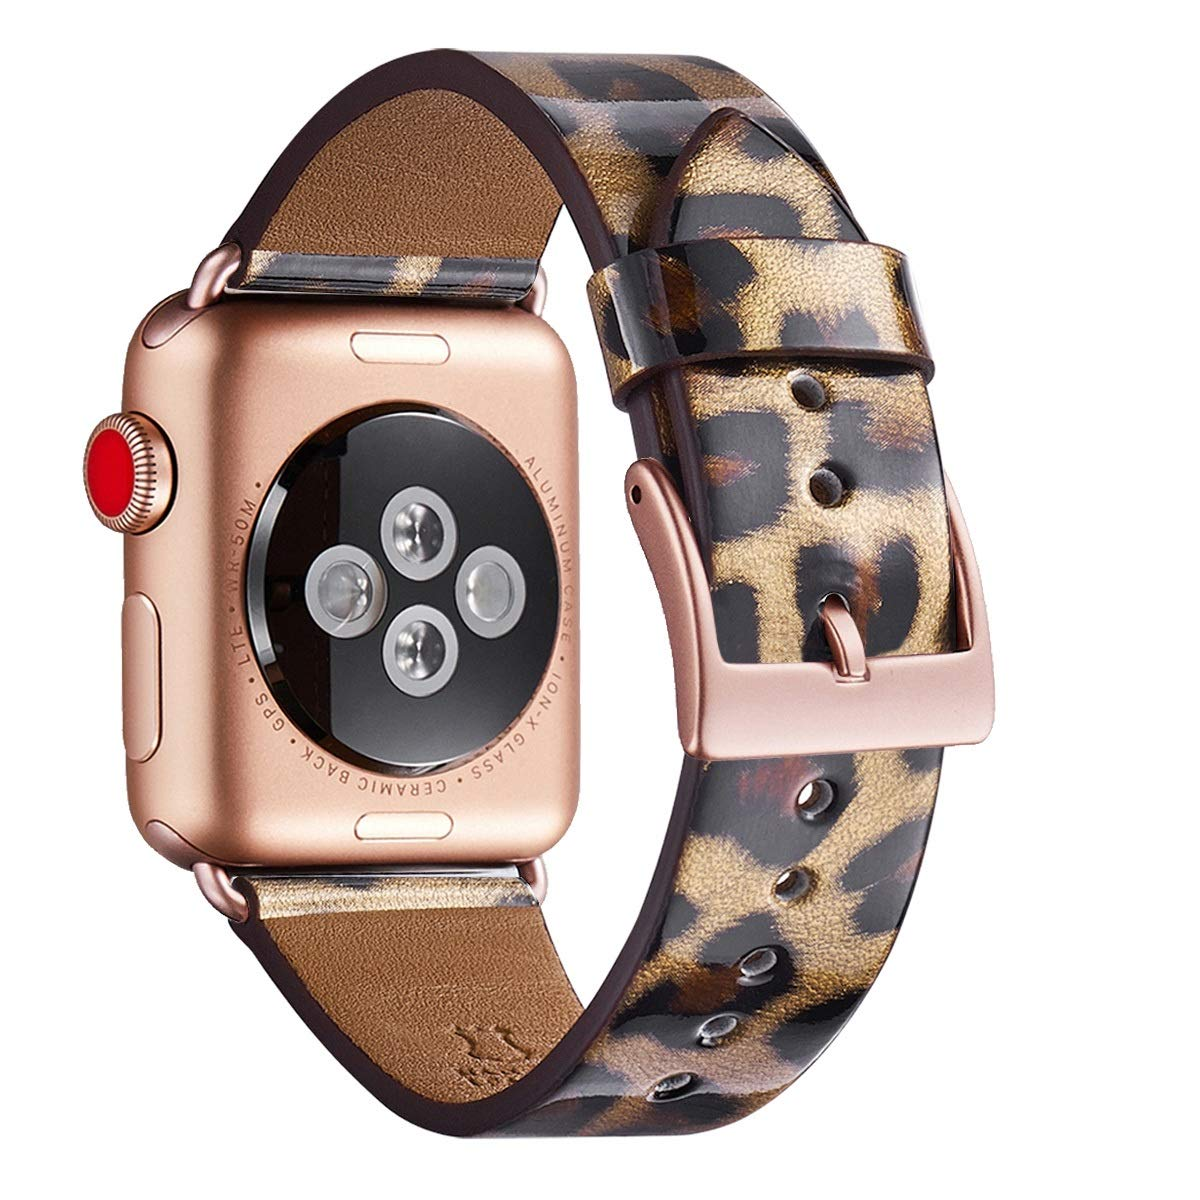 WFEAGL Compatible iWatch Band 38mm 40mm, Top Grain Leather Band with Gold Adapter (Same as Series 5/4/3 with Gold Aluminum Case in Color) for iWatch Series 5/4/3/2/1 (Leopard Band+Rose Gold Adapter)